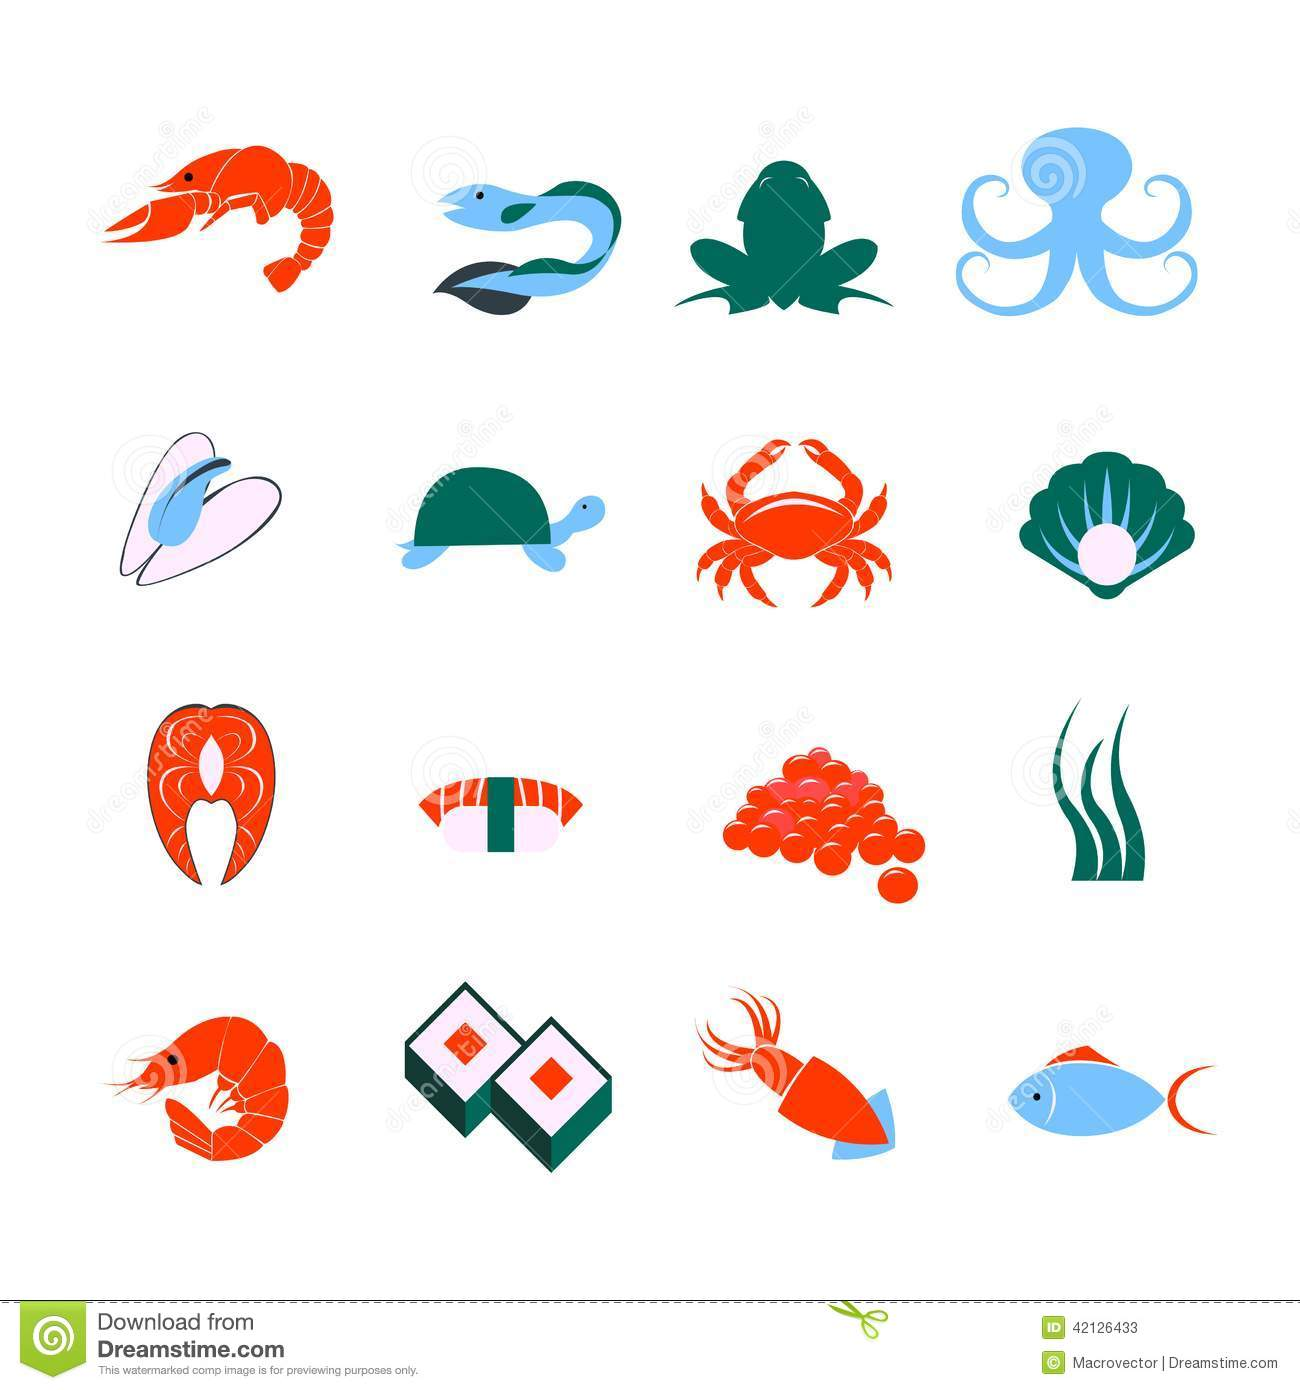 Seafood icons set stock vector. Image of element, frog - 42126433